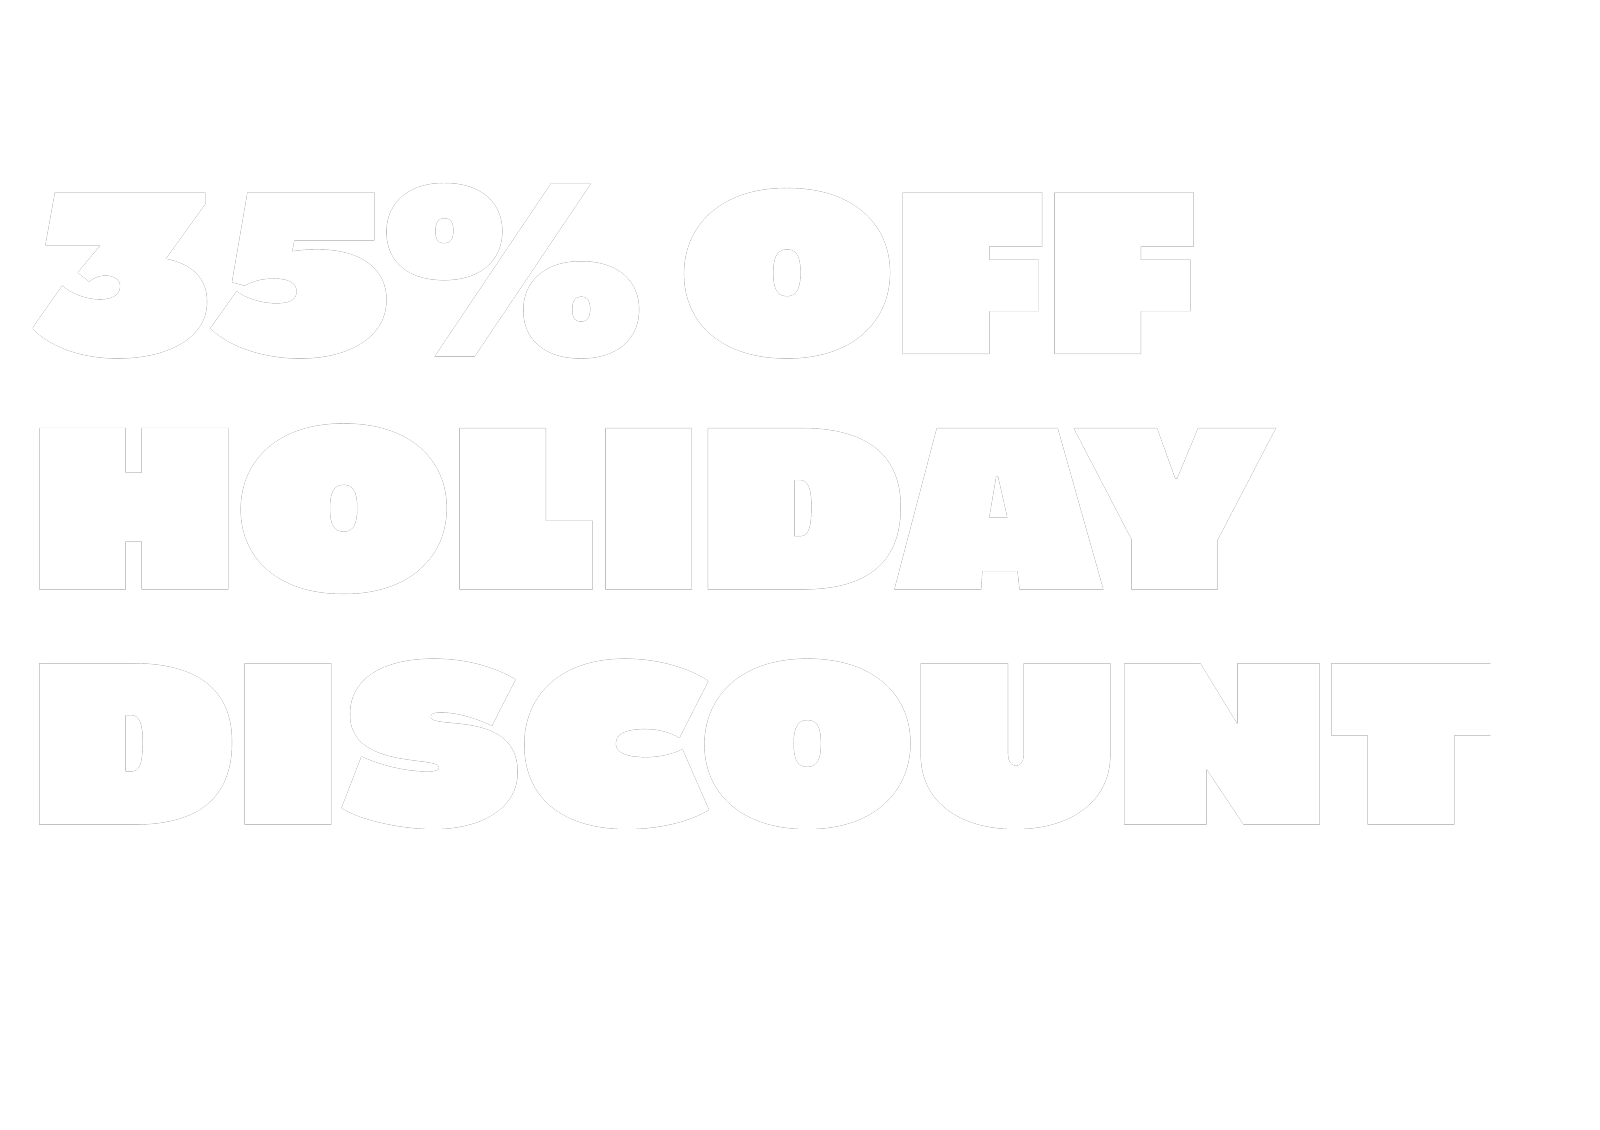 60% off Holidays discount